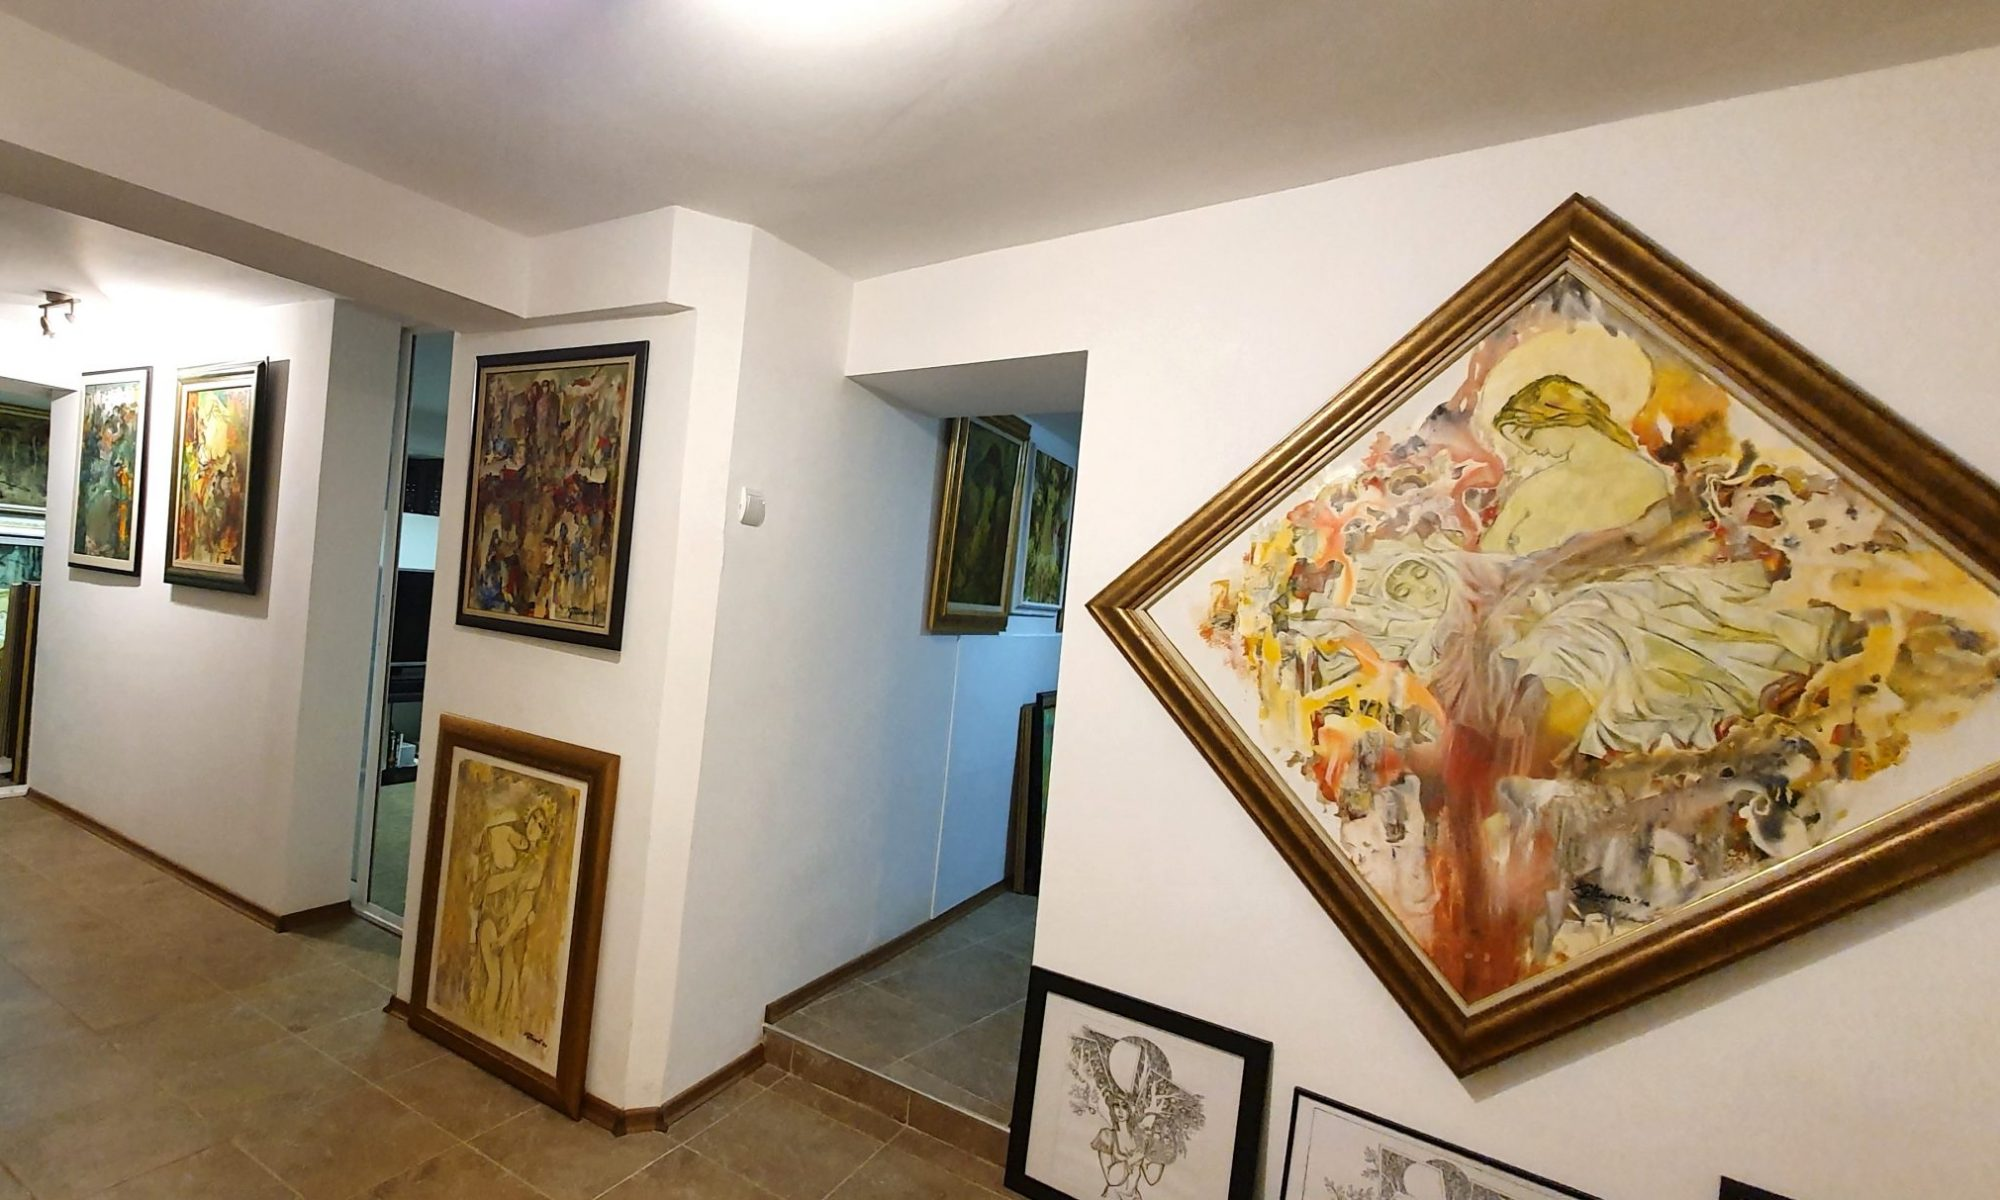 PANEV ART STUDIO